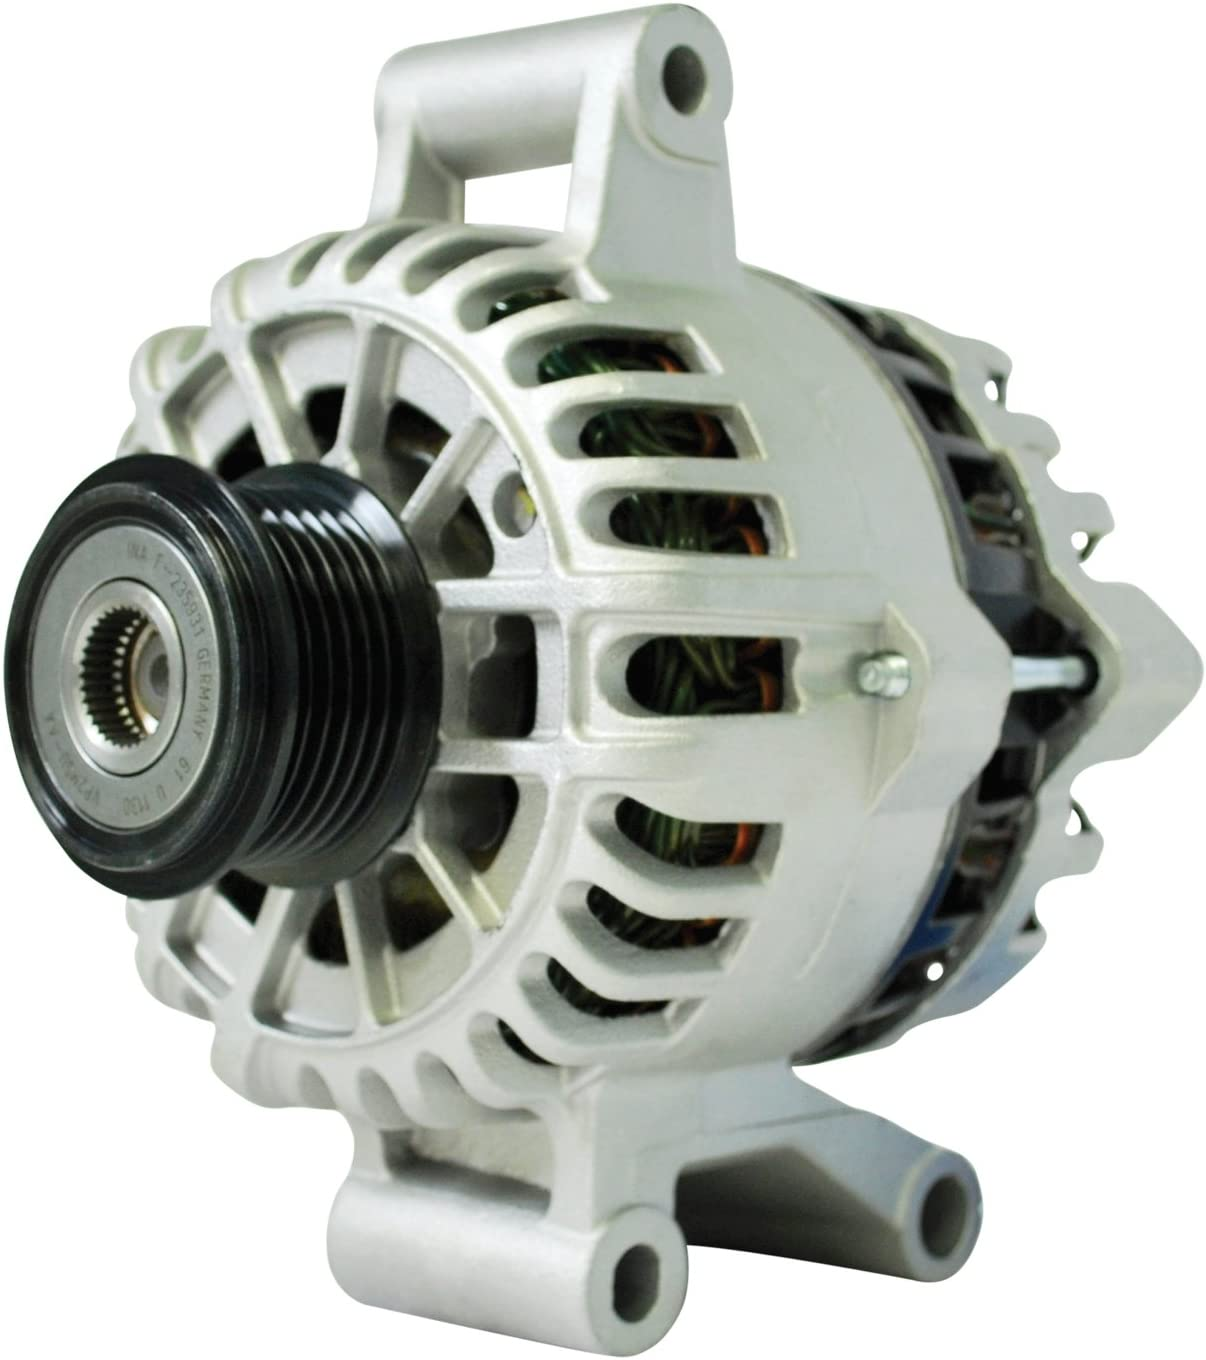 ACDelco 334-2910 Professional Deluxe Remanufactured specialty shop Alternator